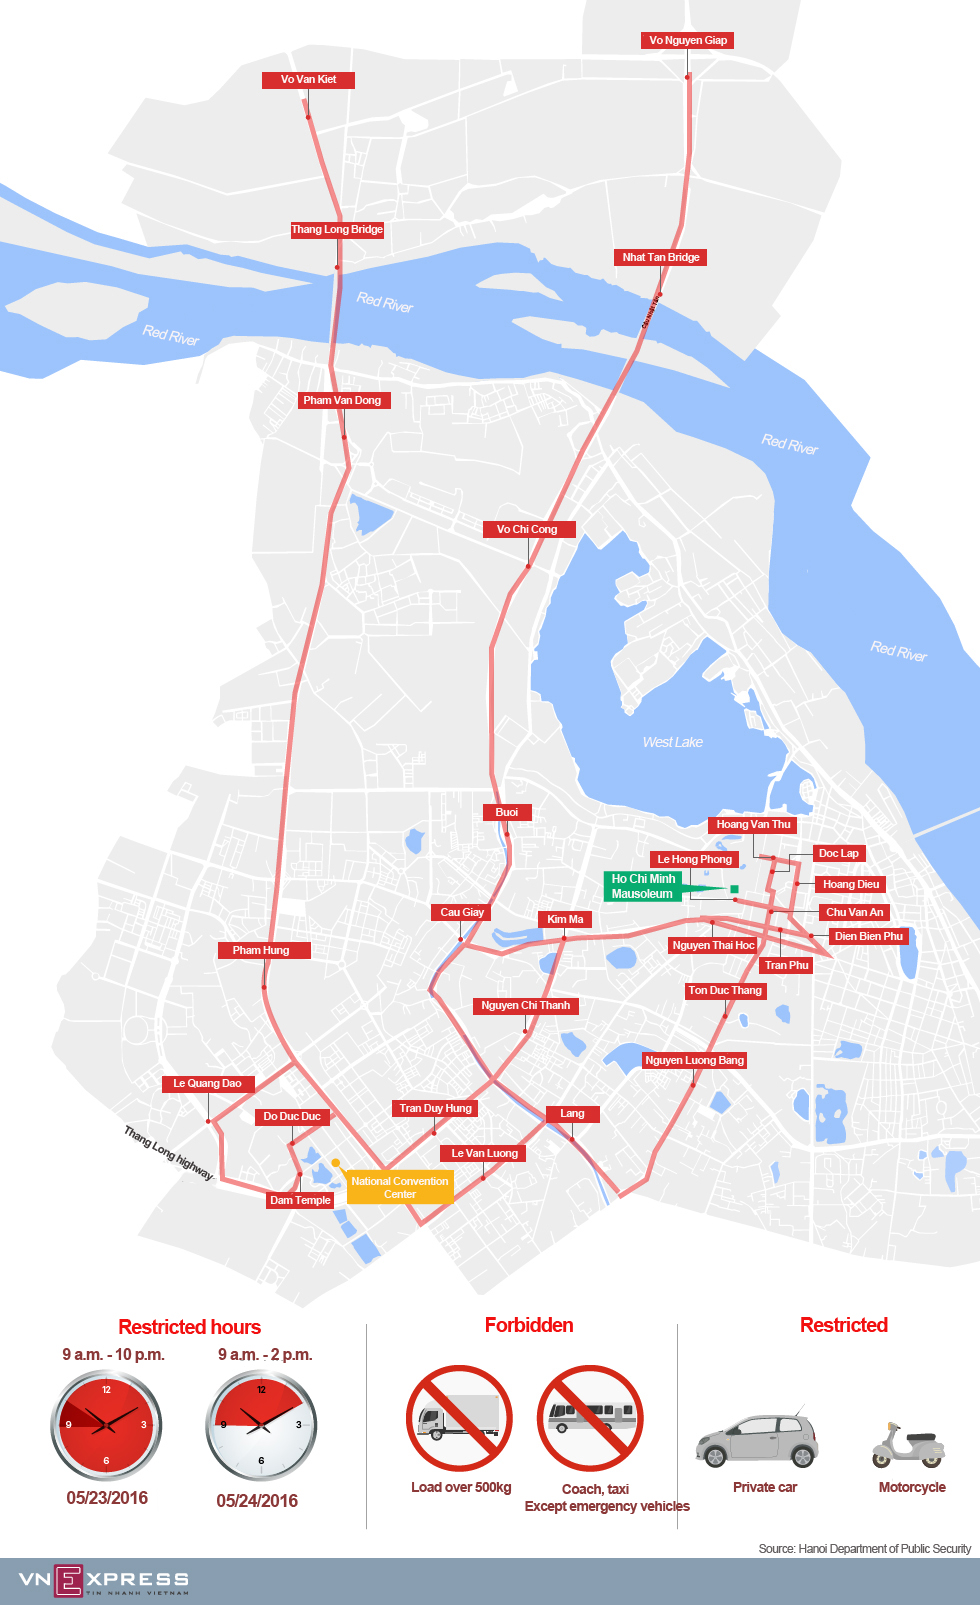 30 restricted streets in Hanoi during Obama's visit